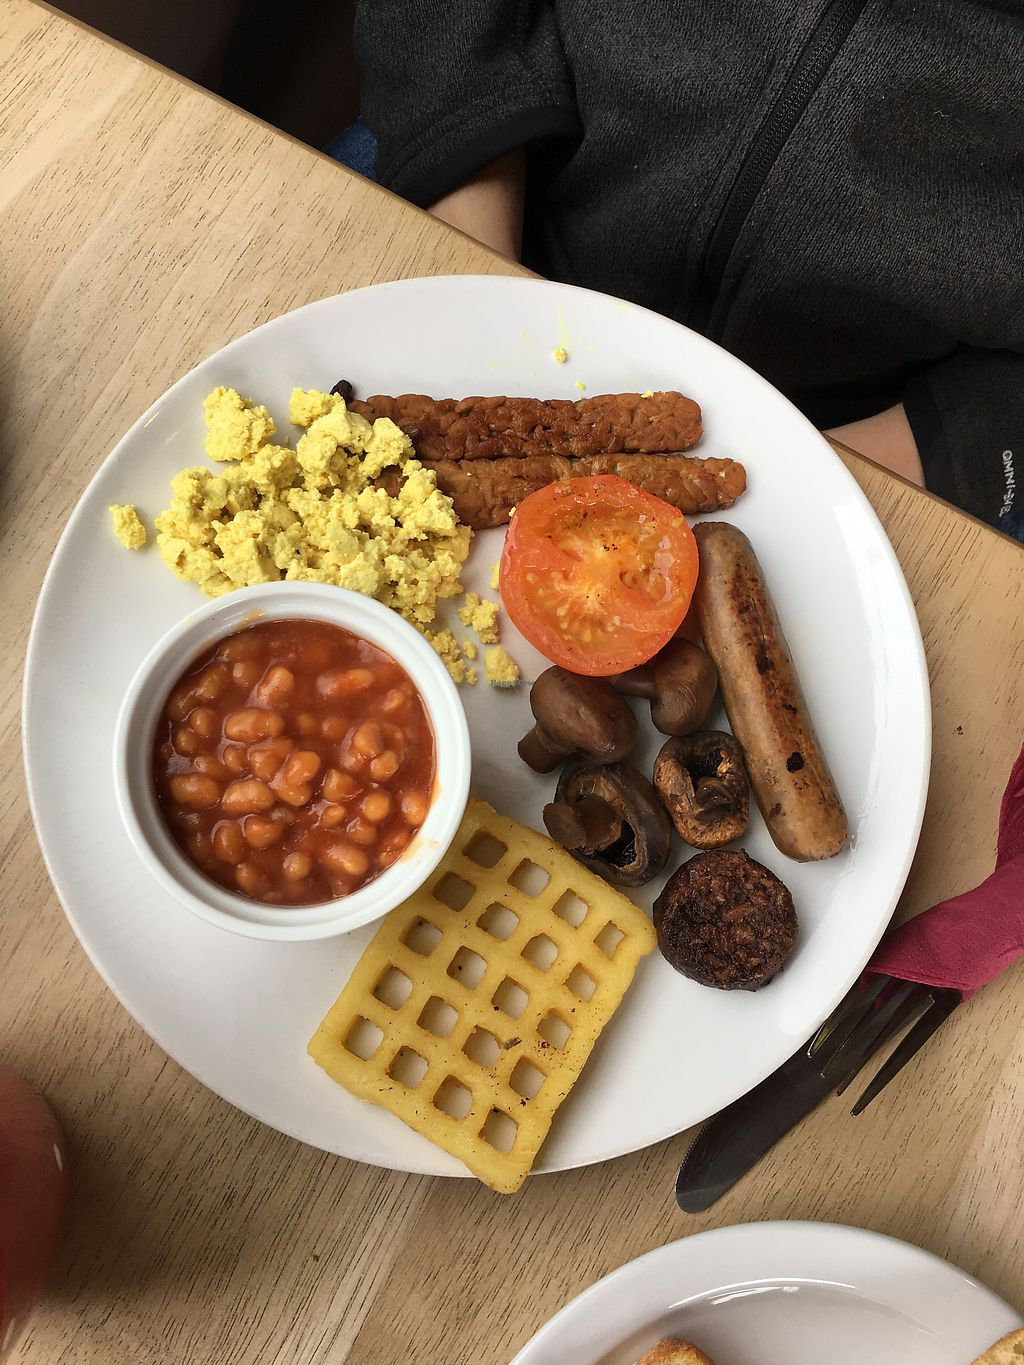 """Photo of Kat's Kitchen  by <a href=""""/members/profile/jessicaellenn"""">jessicaellenn</a> <br/>Vegan all day breakfast  <br/> June 29, 2017  - <a href='/contact/abuse/image/79734/274762'>Report</a>"""